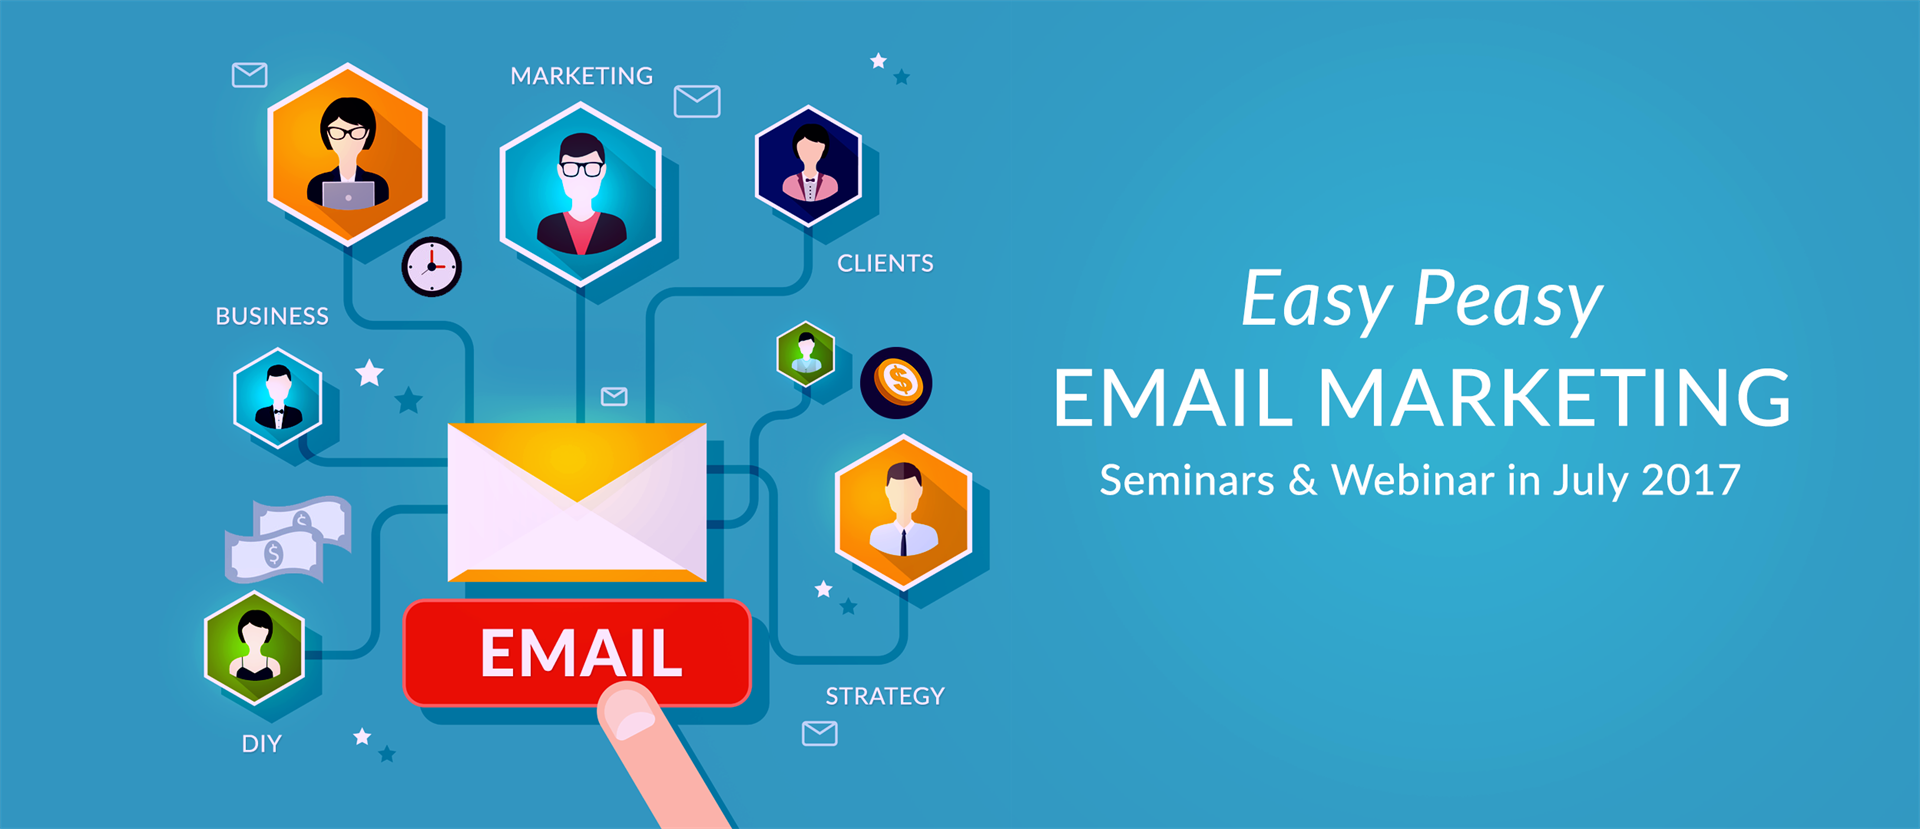 Easy Peasy Email Marketing Seminar on Friday July 21 at the DIY in Vancouver